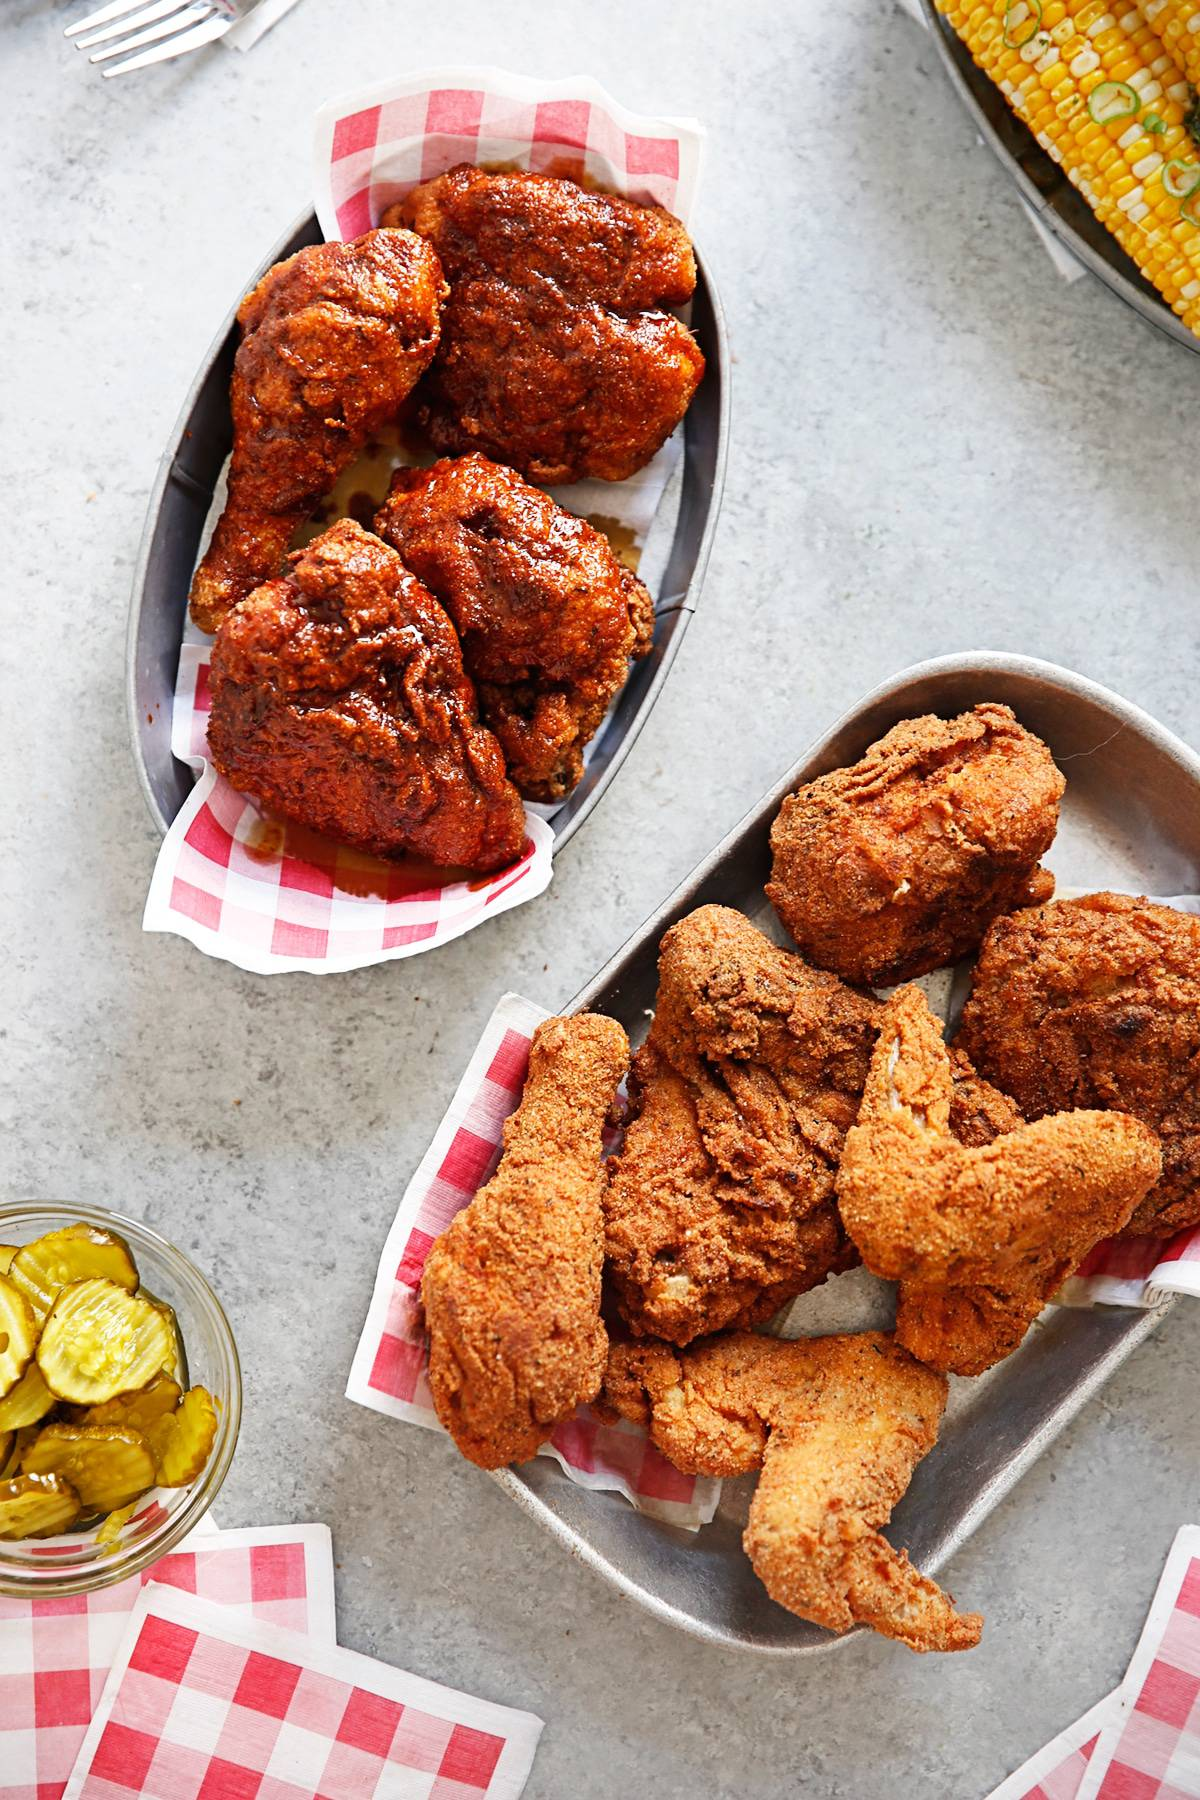 Ultimate Fried Chicken (Gluten-Free)